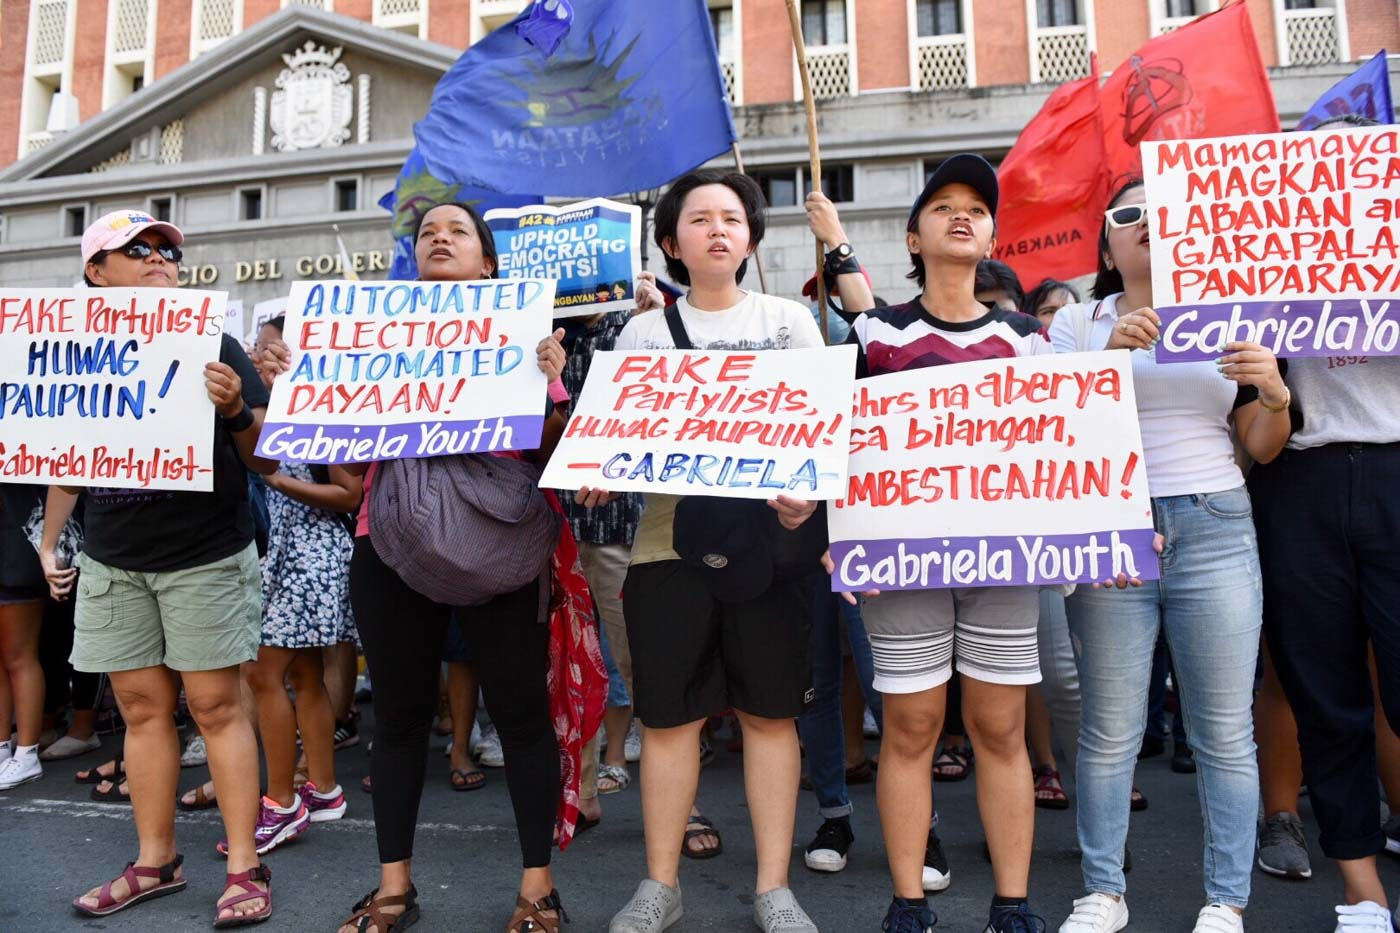 ELECTION IRREGULARITIES? Several groups including Anakbayan, Kabataan Partylist, and Gabriela troop outside Comelec in Intramuros to protest suspected election fraud in the 2019 polls on Tuesday, May 14. Photo by LeAnne Jazul/Rappler